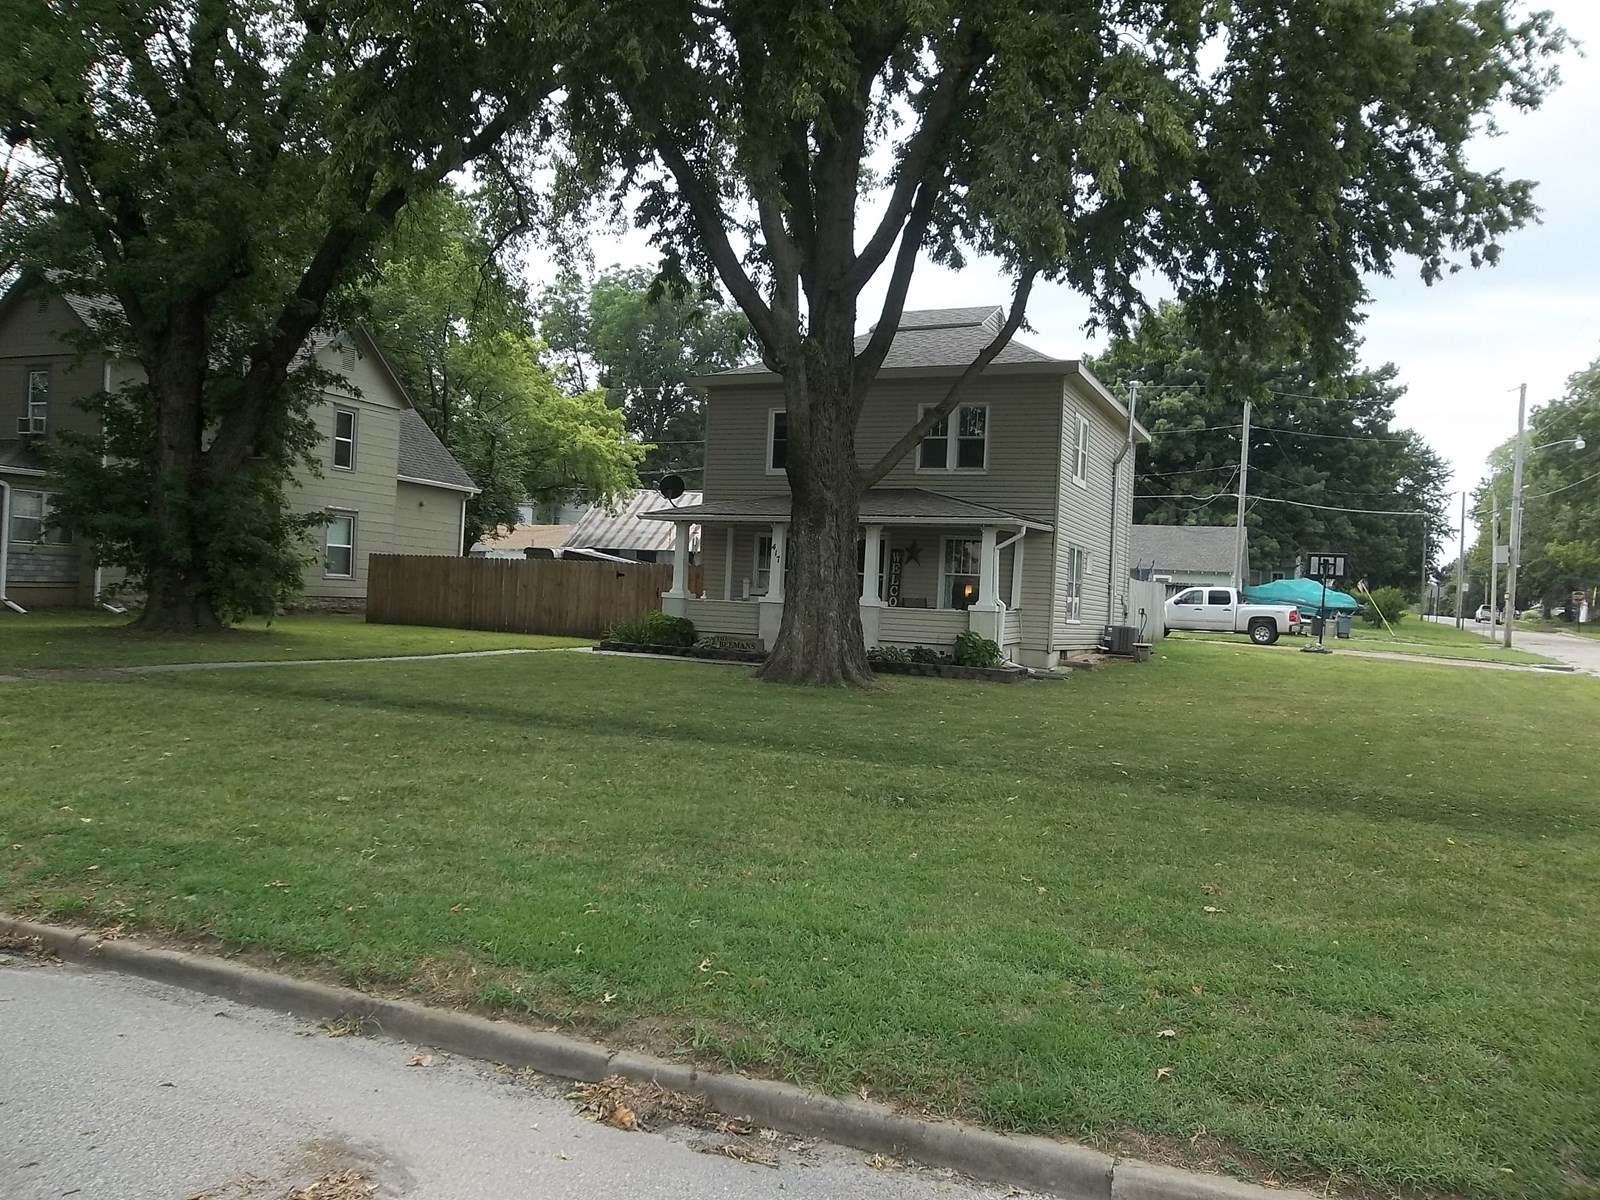 Home for sale in Chanute, Kansas